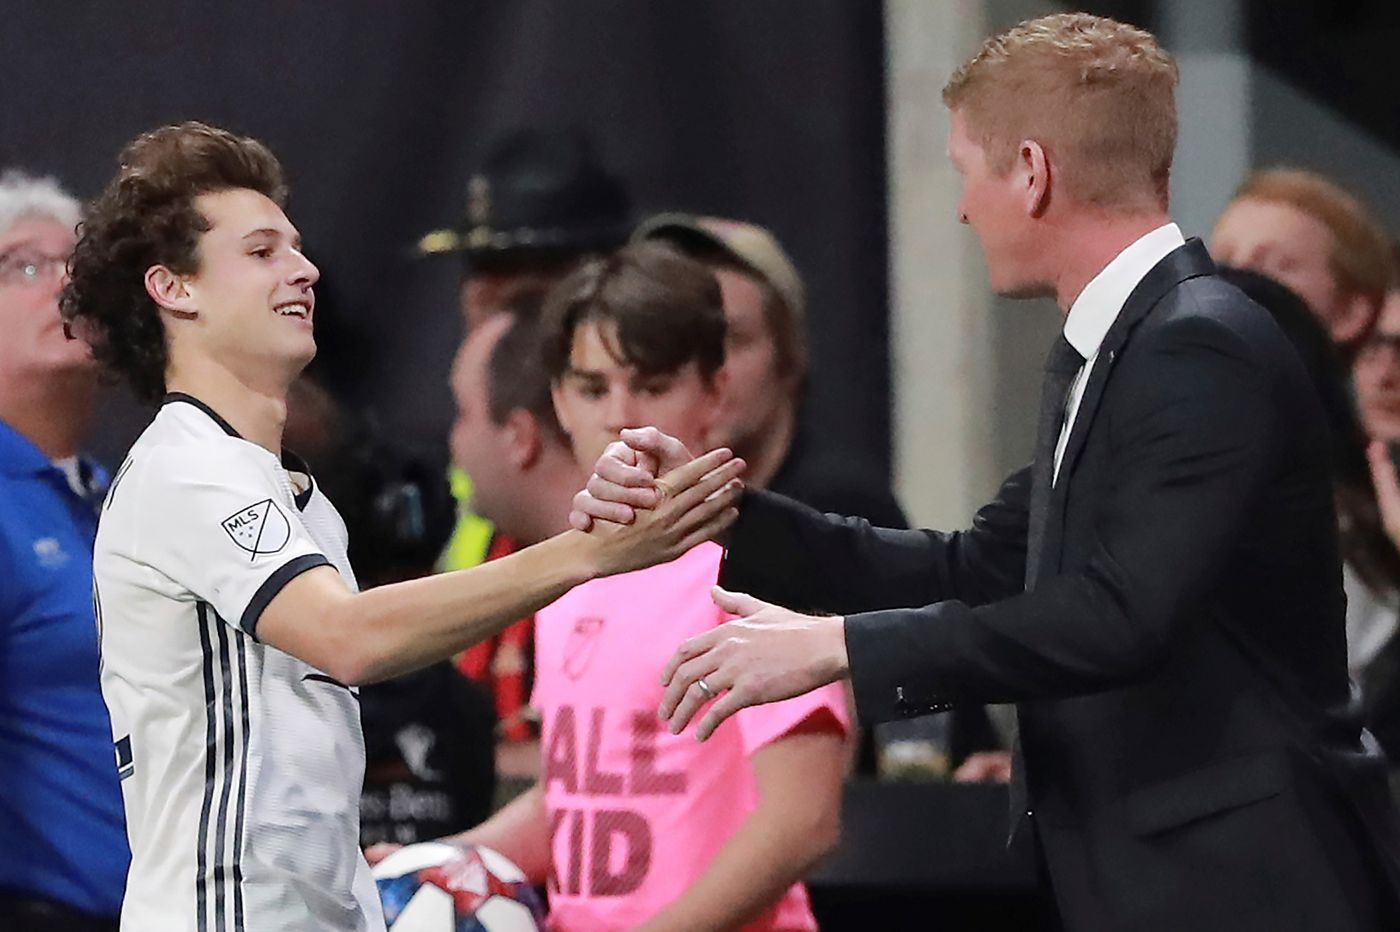 Medford's Brenden Aaronson officially arrives as a pro with first goal for Union